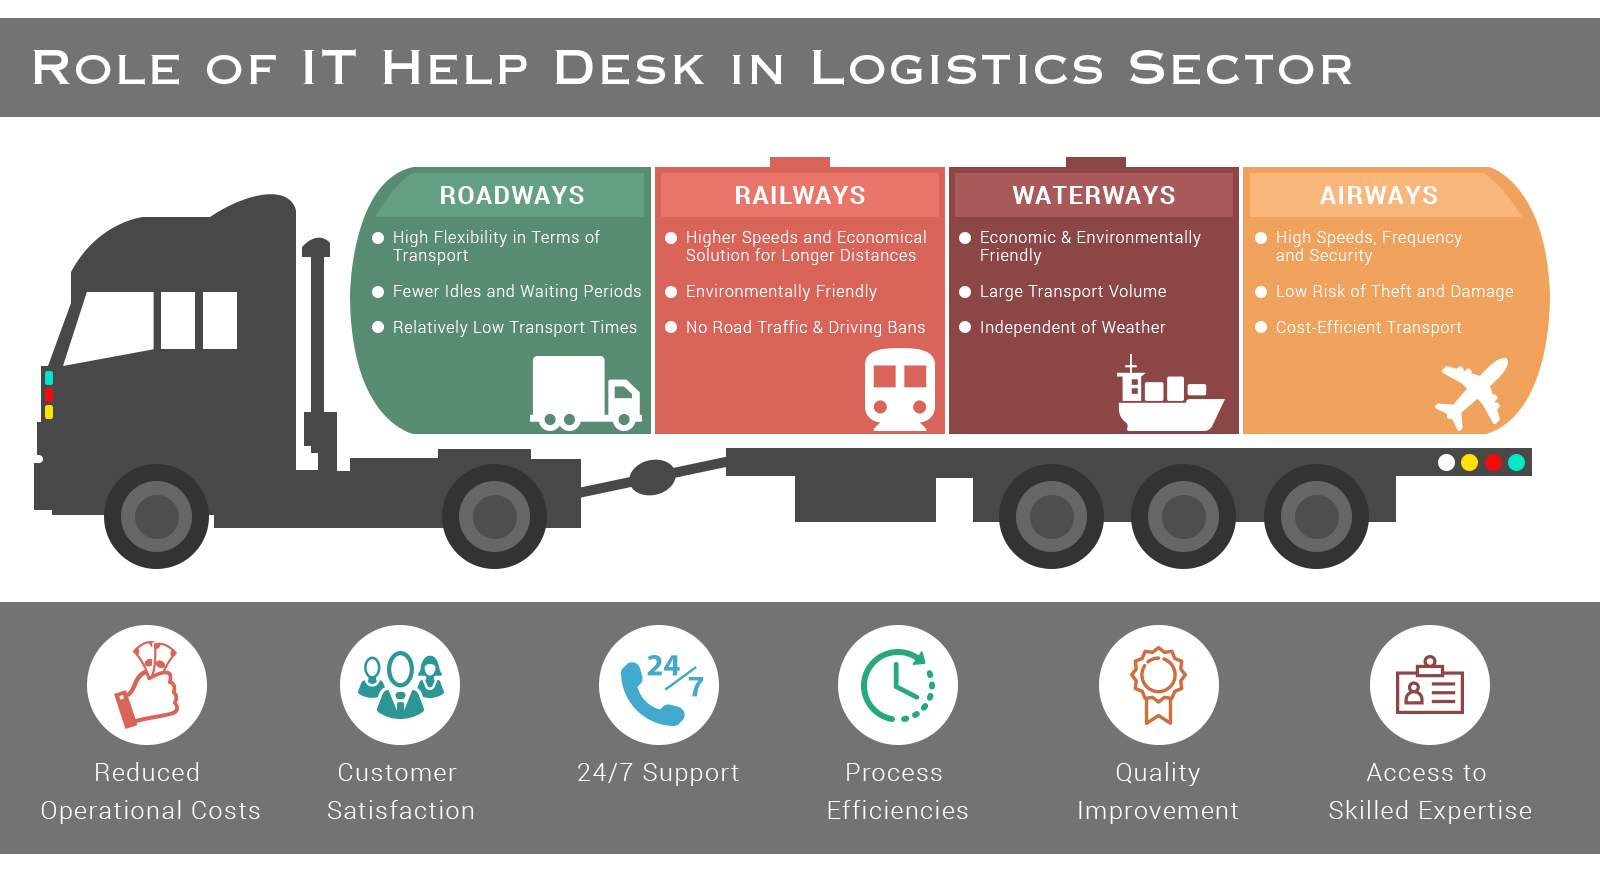 role-of-it-help-desk-in-logistics-sector-1